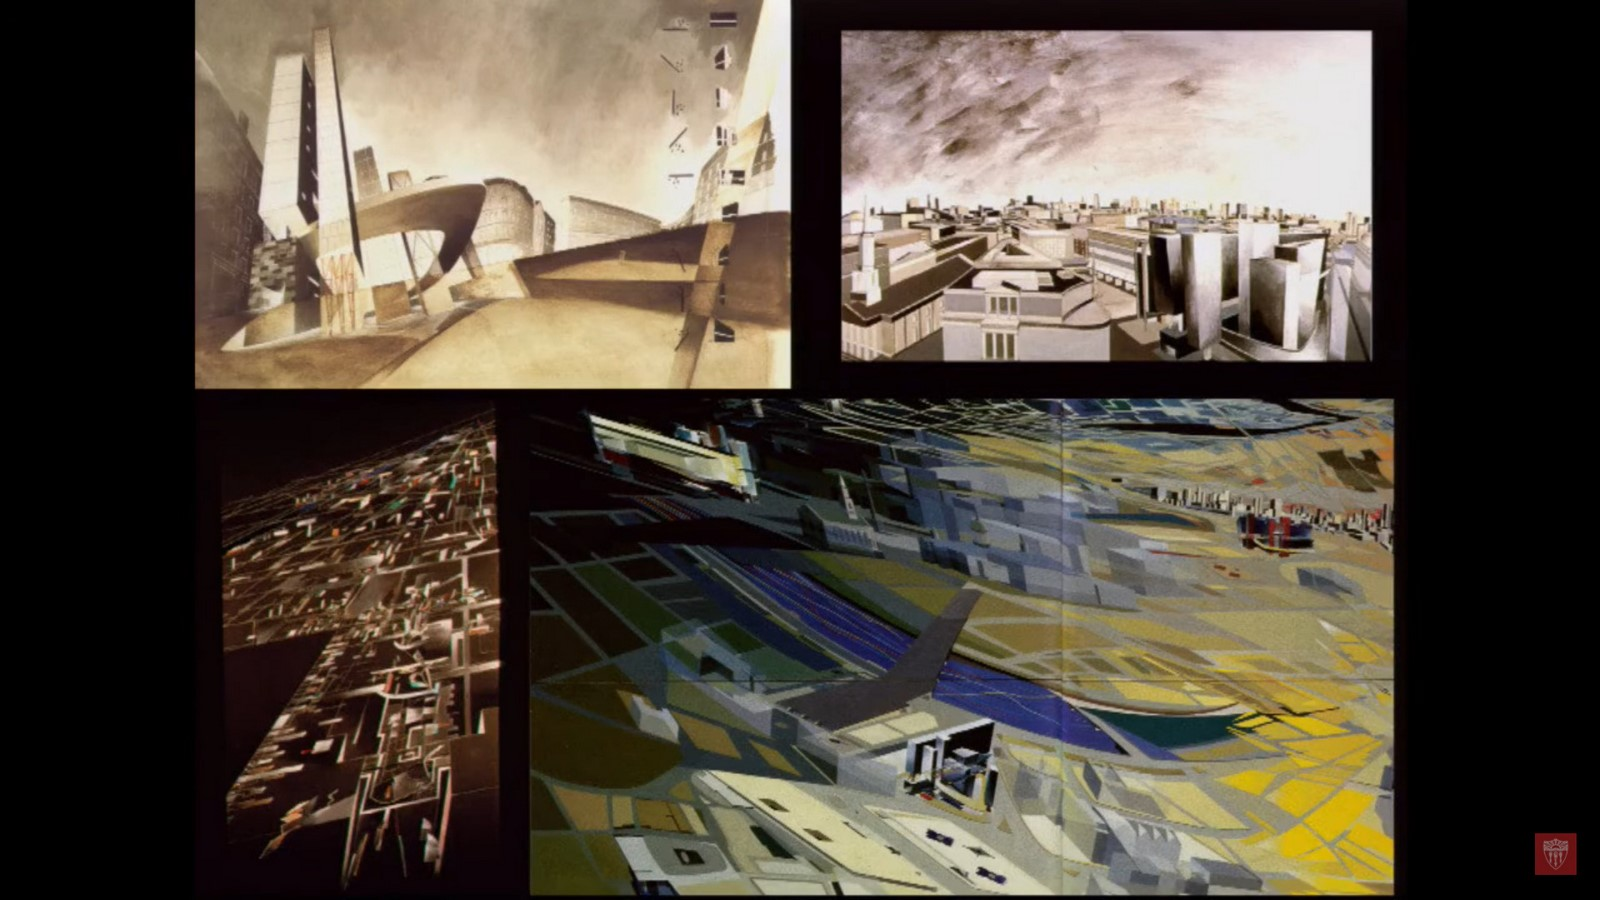 Interviews with Architects: Visions and Voices: An Evening with Zaha Hadid - Sheet4